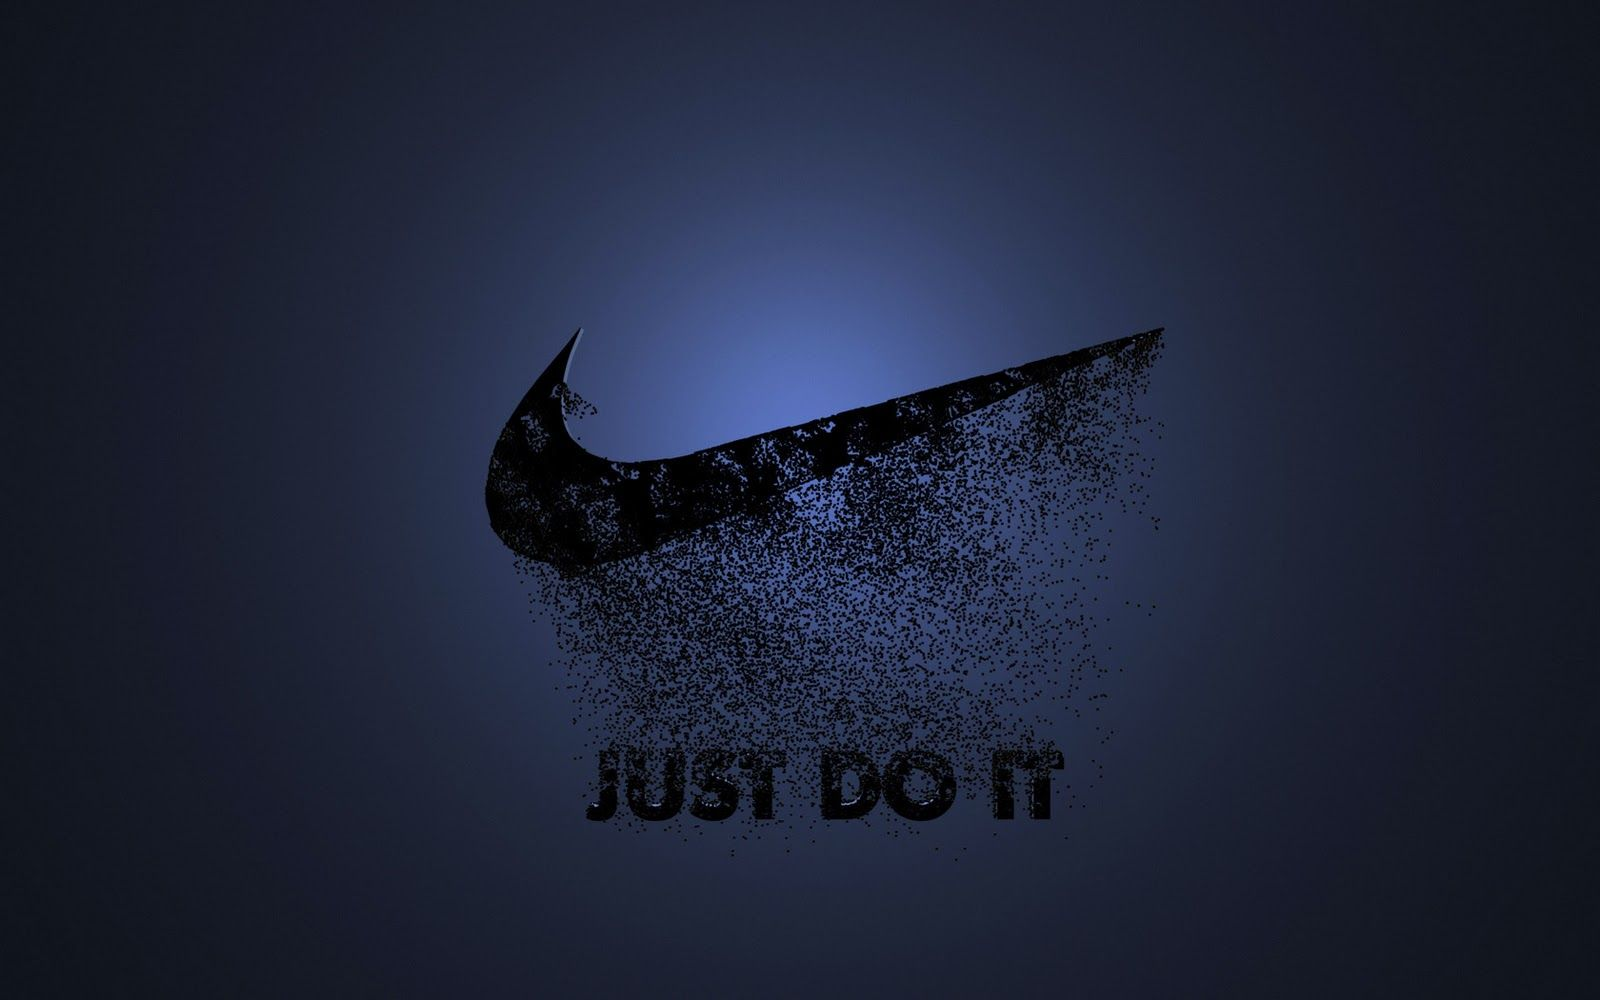 Wide hd nike just do it wallpaper flgx hd 13599 kb wide hd nike just do it wallpaper flgx hd 13599 kb voltagebd Image collections